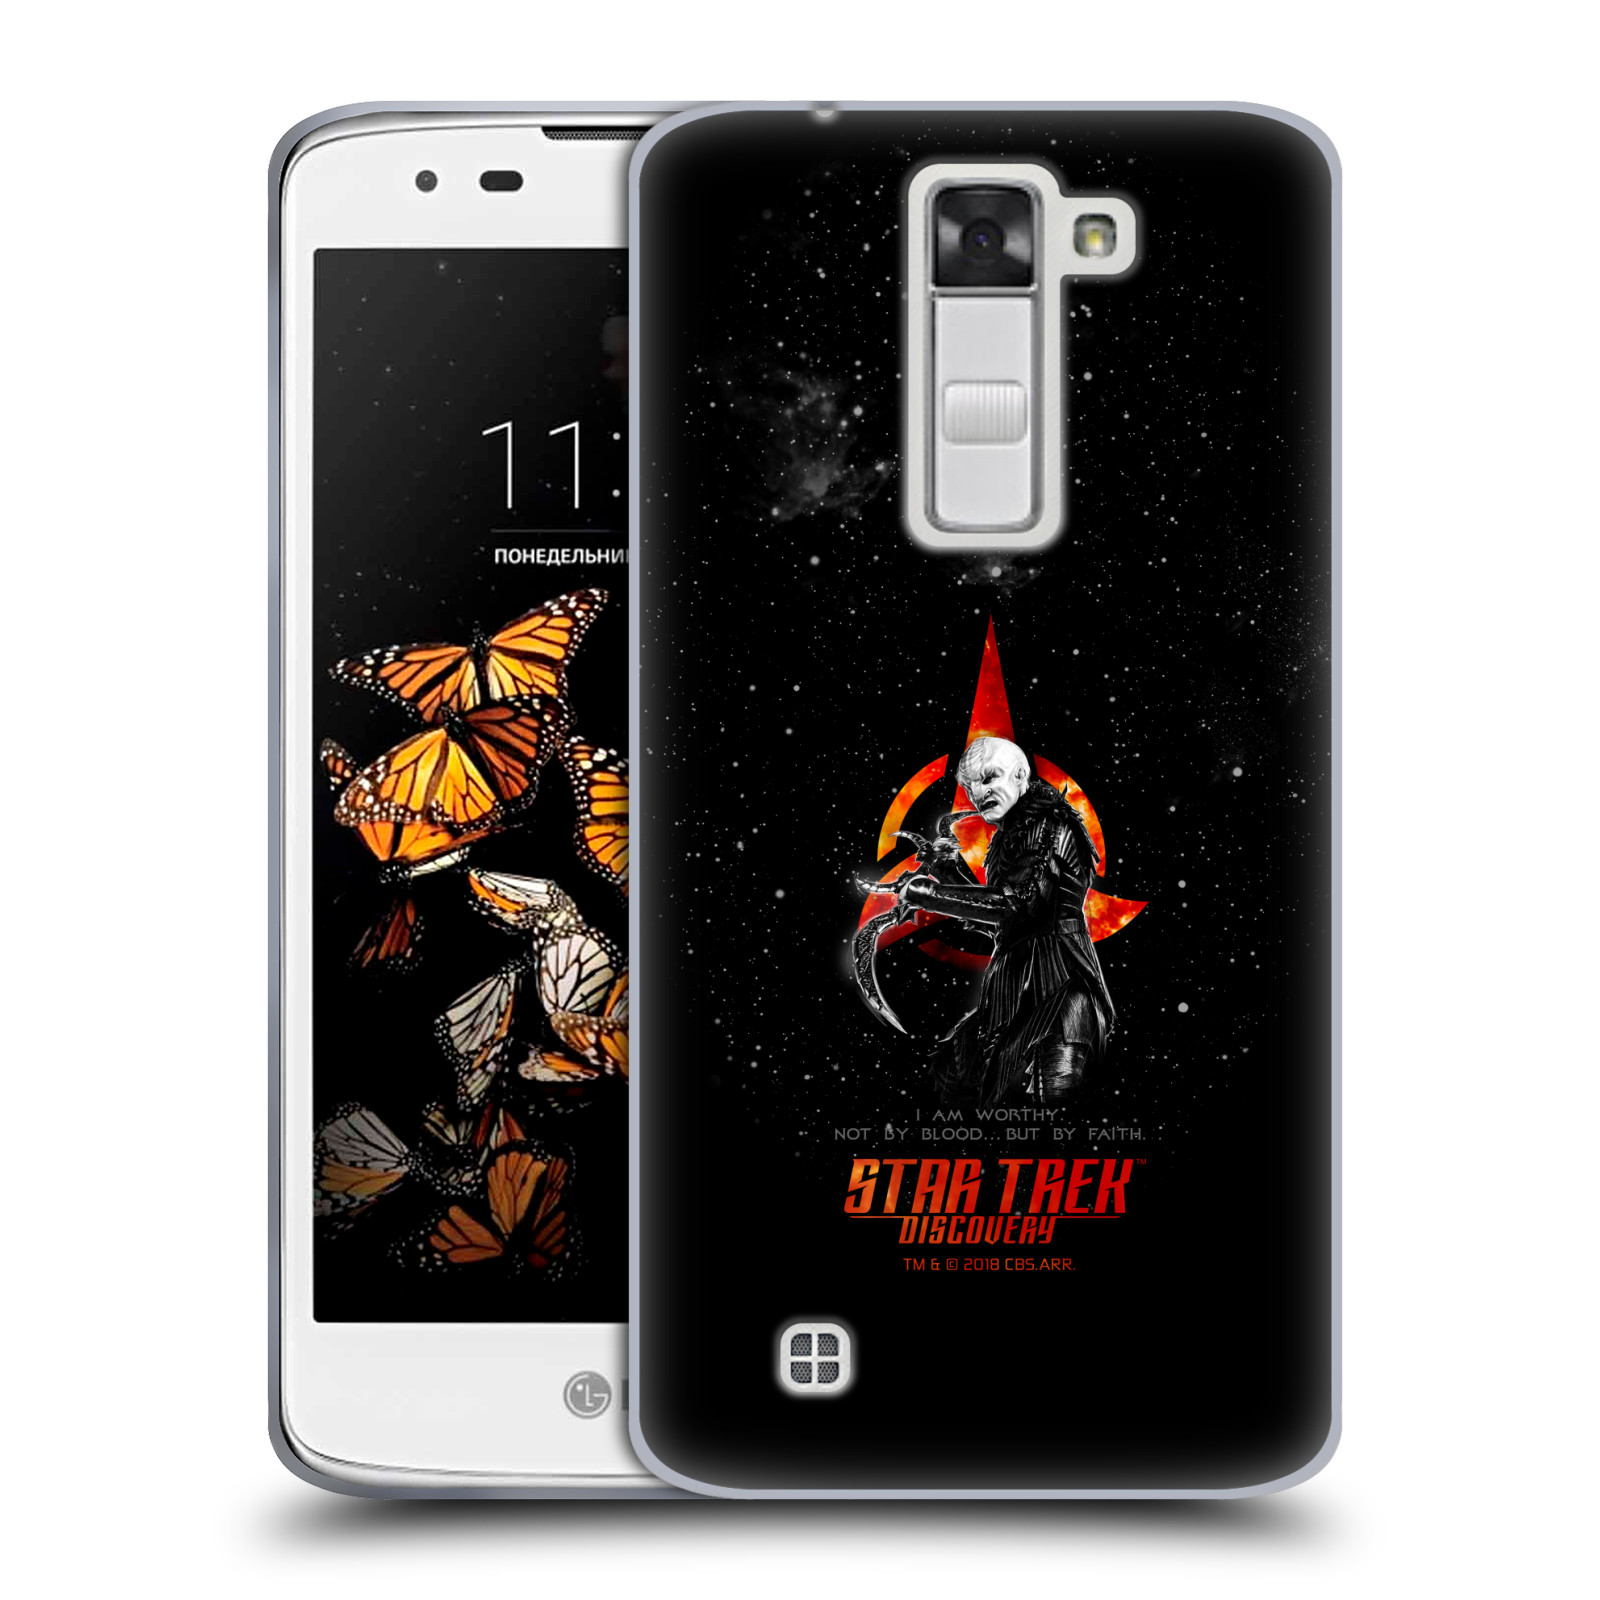 STAR-TREK-DISCOVERY-DISCOVERY-NEBULA-CHARACTERS-SOFT-GEL-CASE-FOR-LG-PHONES-2